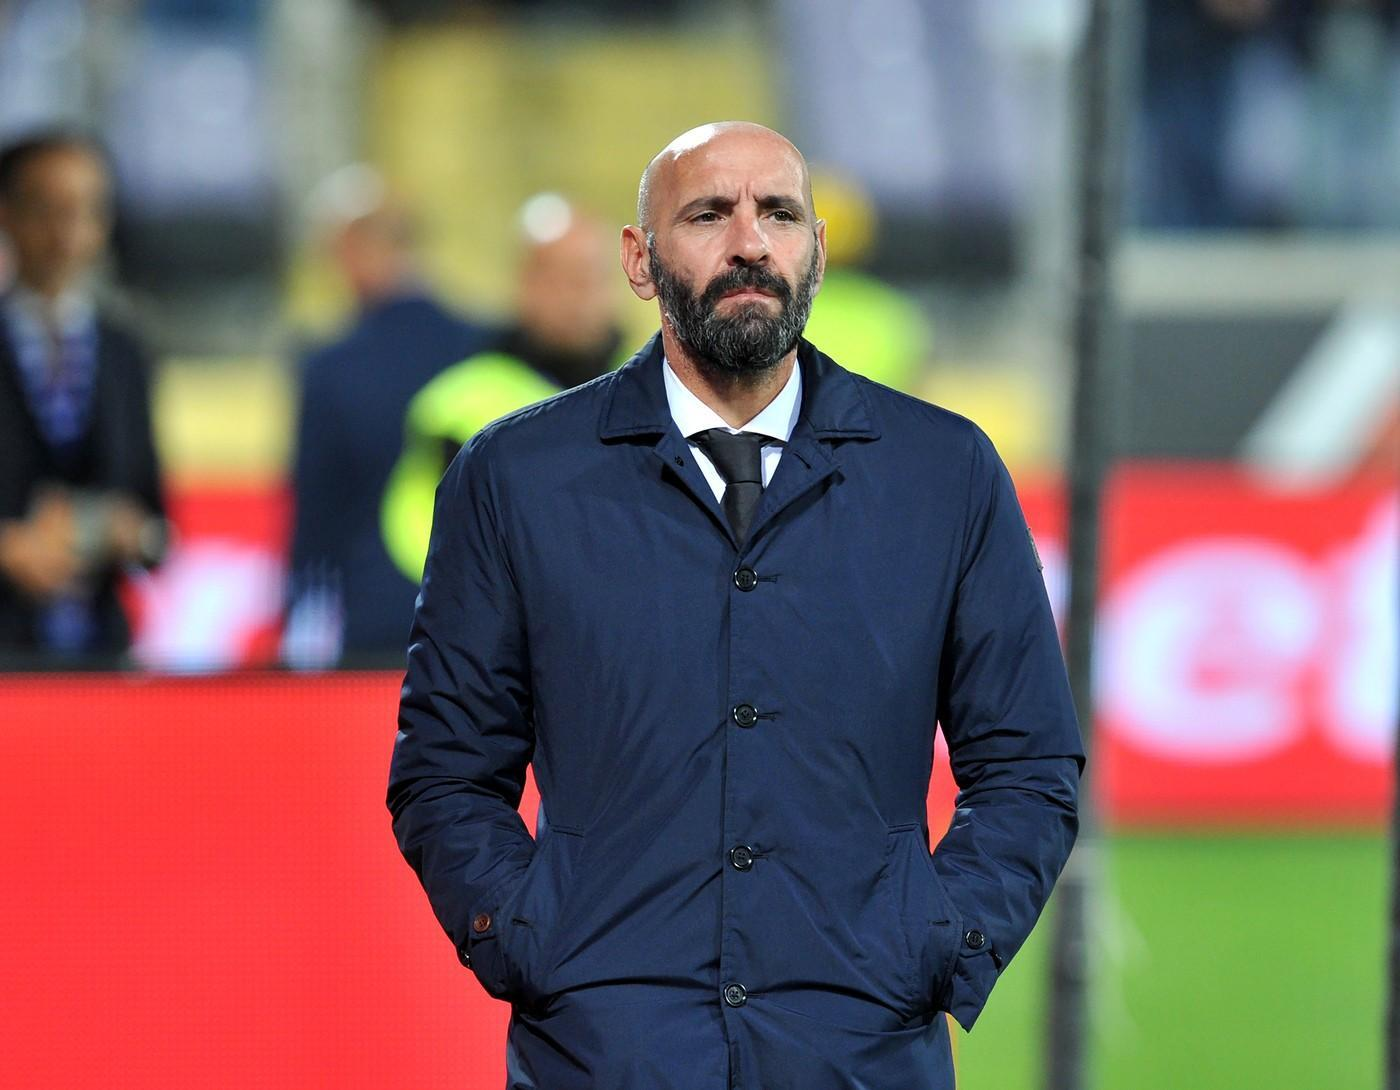 Roma-Virtus Entella, Monchi: